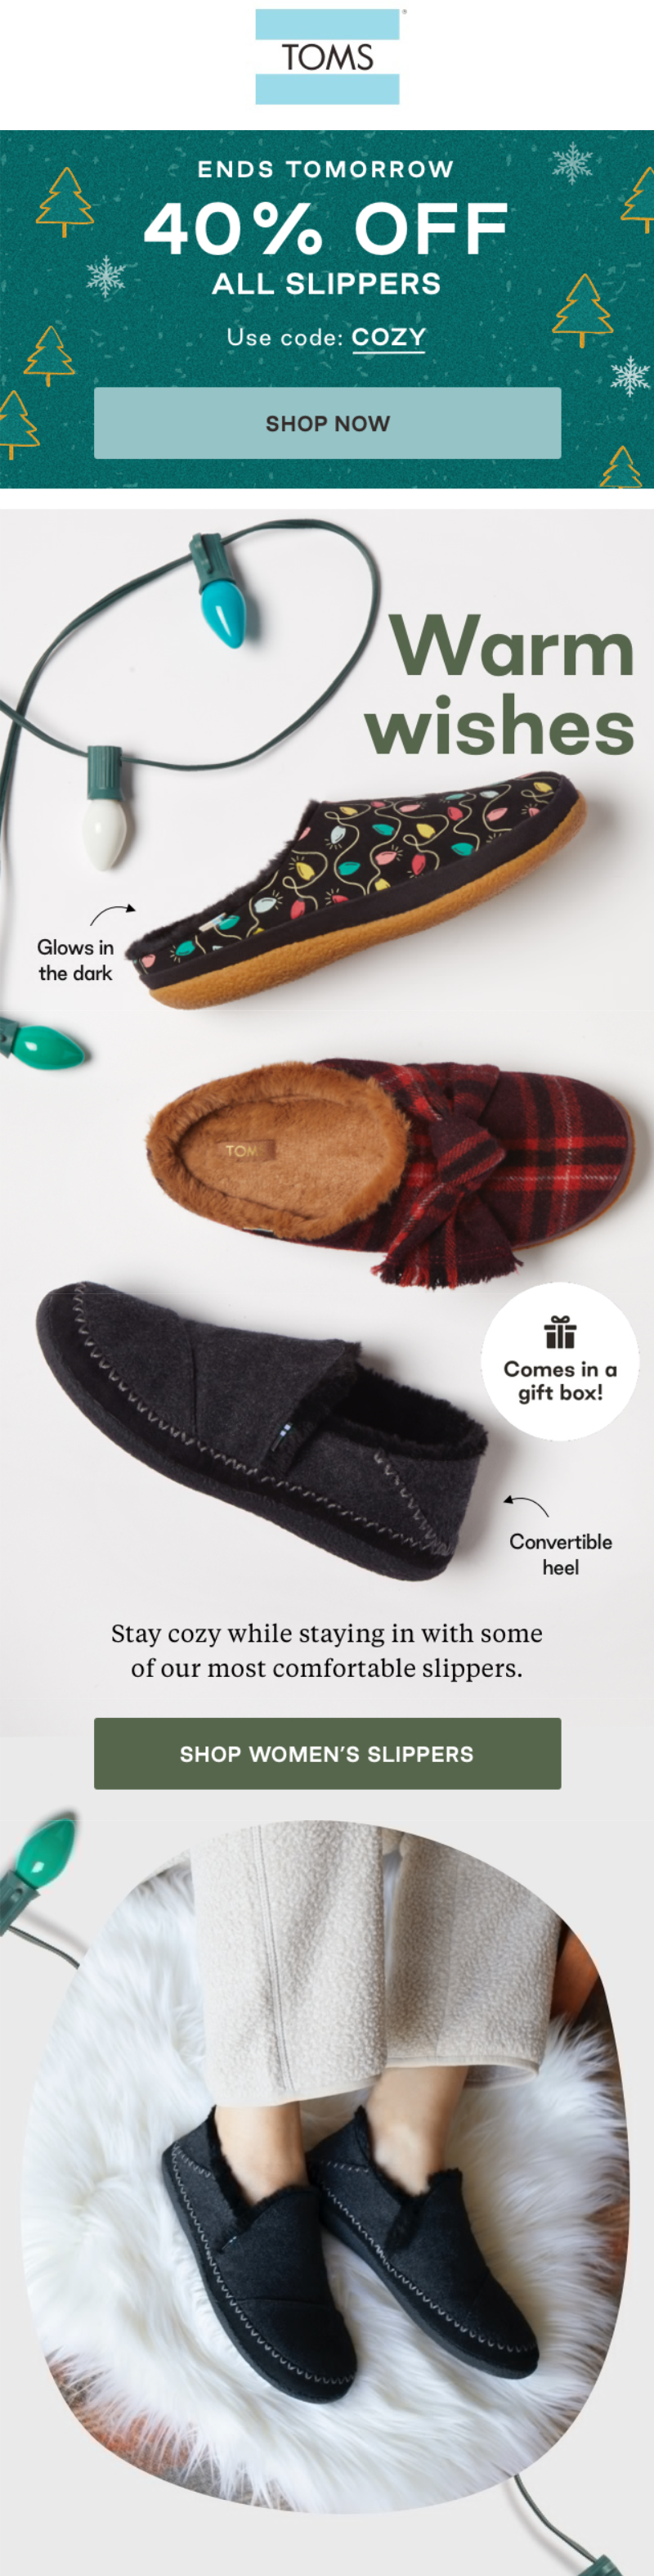 toms-40-off-oh-so-cozy-slippers